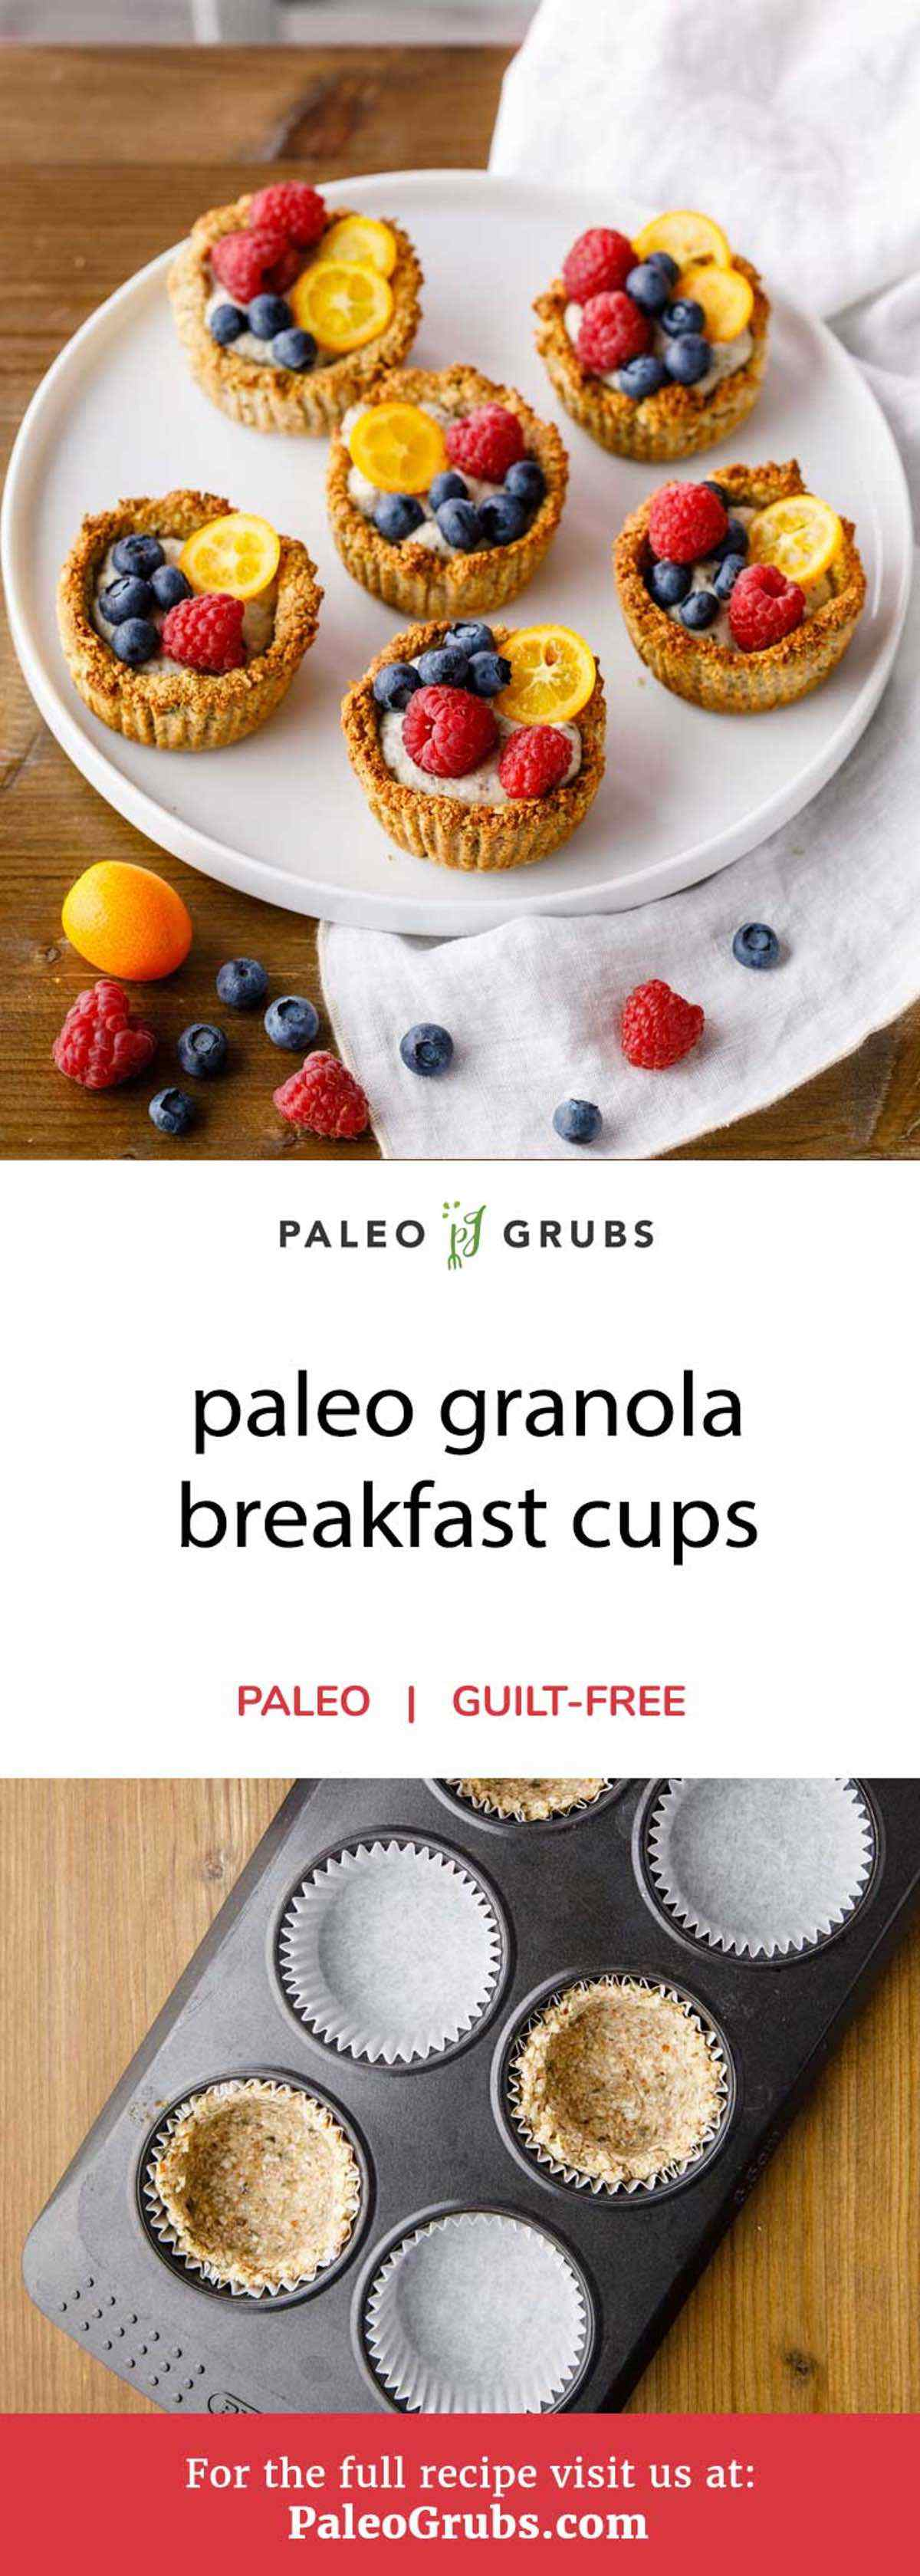 Looking for the perfect paleo-friendly breakfast option to grab and go? These granola breakfast cups have the perfect combination of nuts and seeds for a fantastic granola base while also using chia seeds and cashews for a yummy replacement for regular yogurt. They're a terrific gluten and dairy-free breakfast cup that can be enjoyed by anyone.